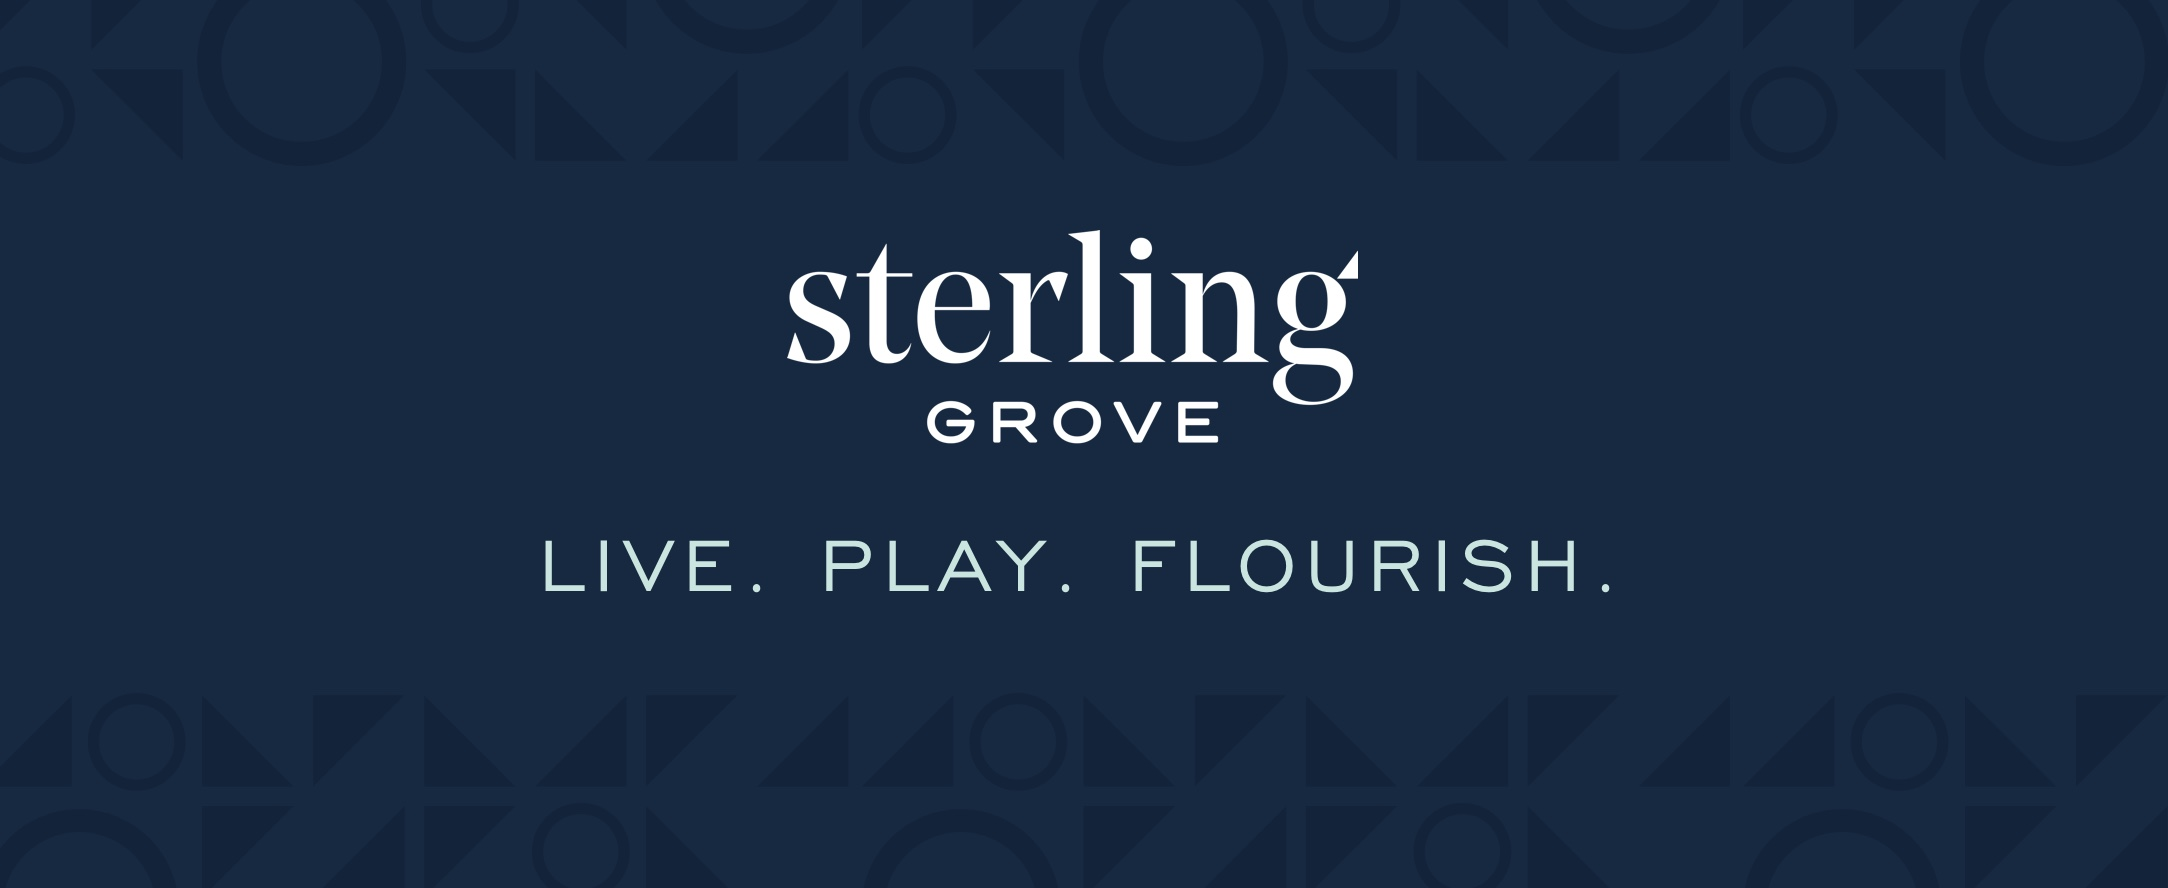 Sterling Grove Events